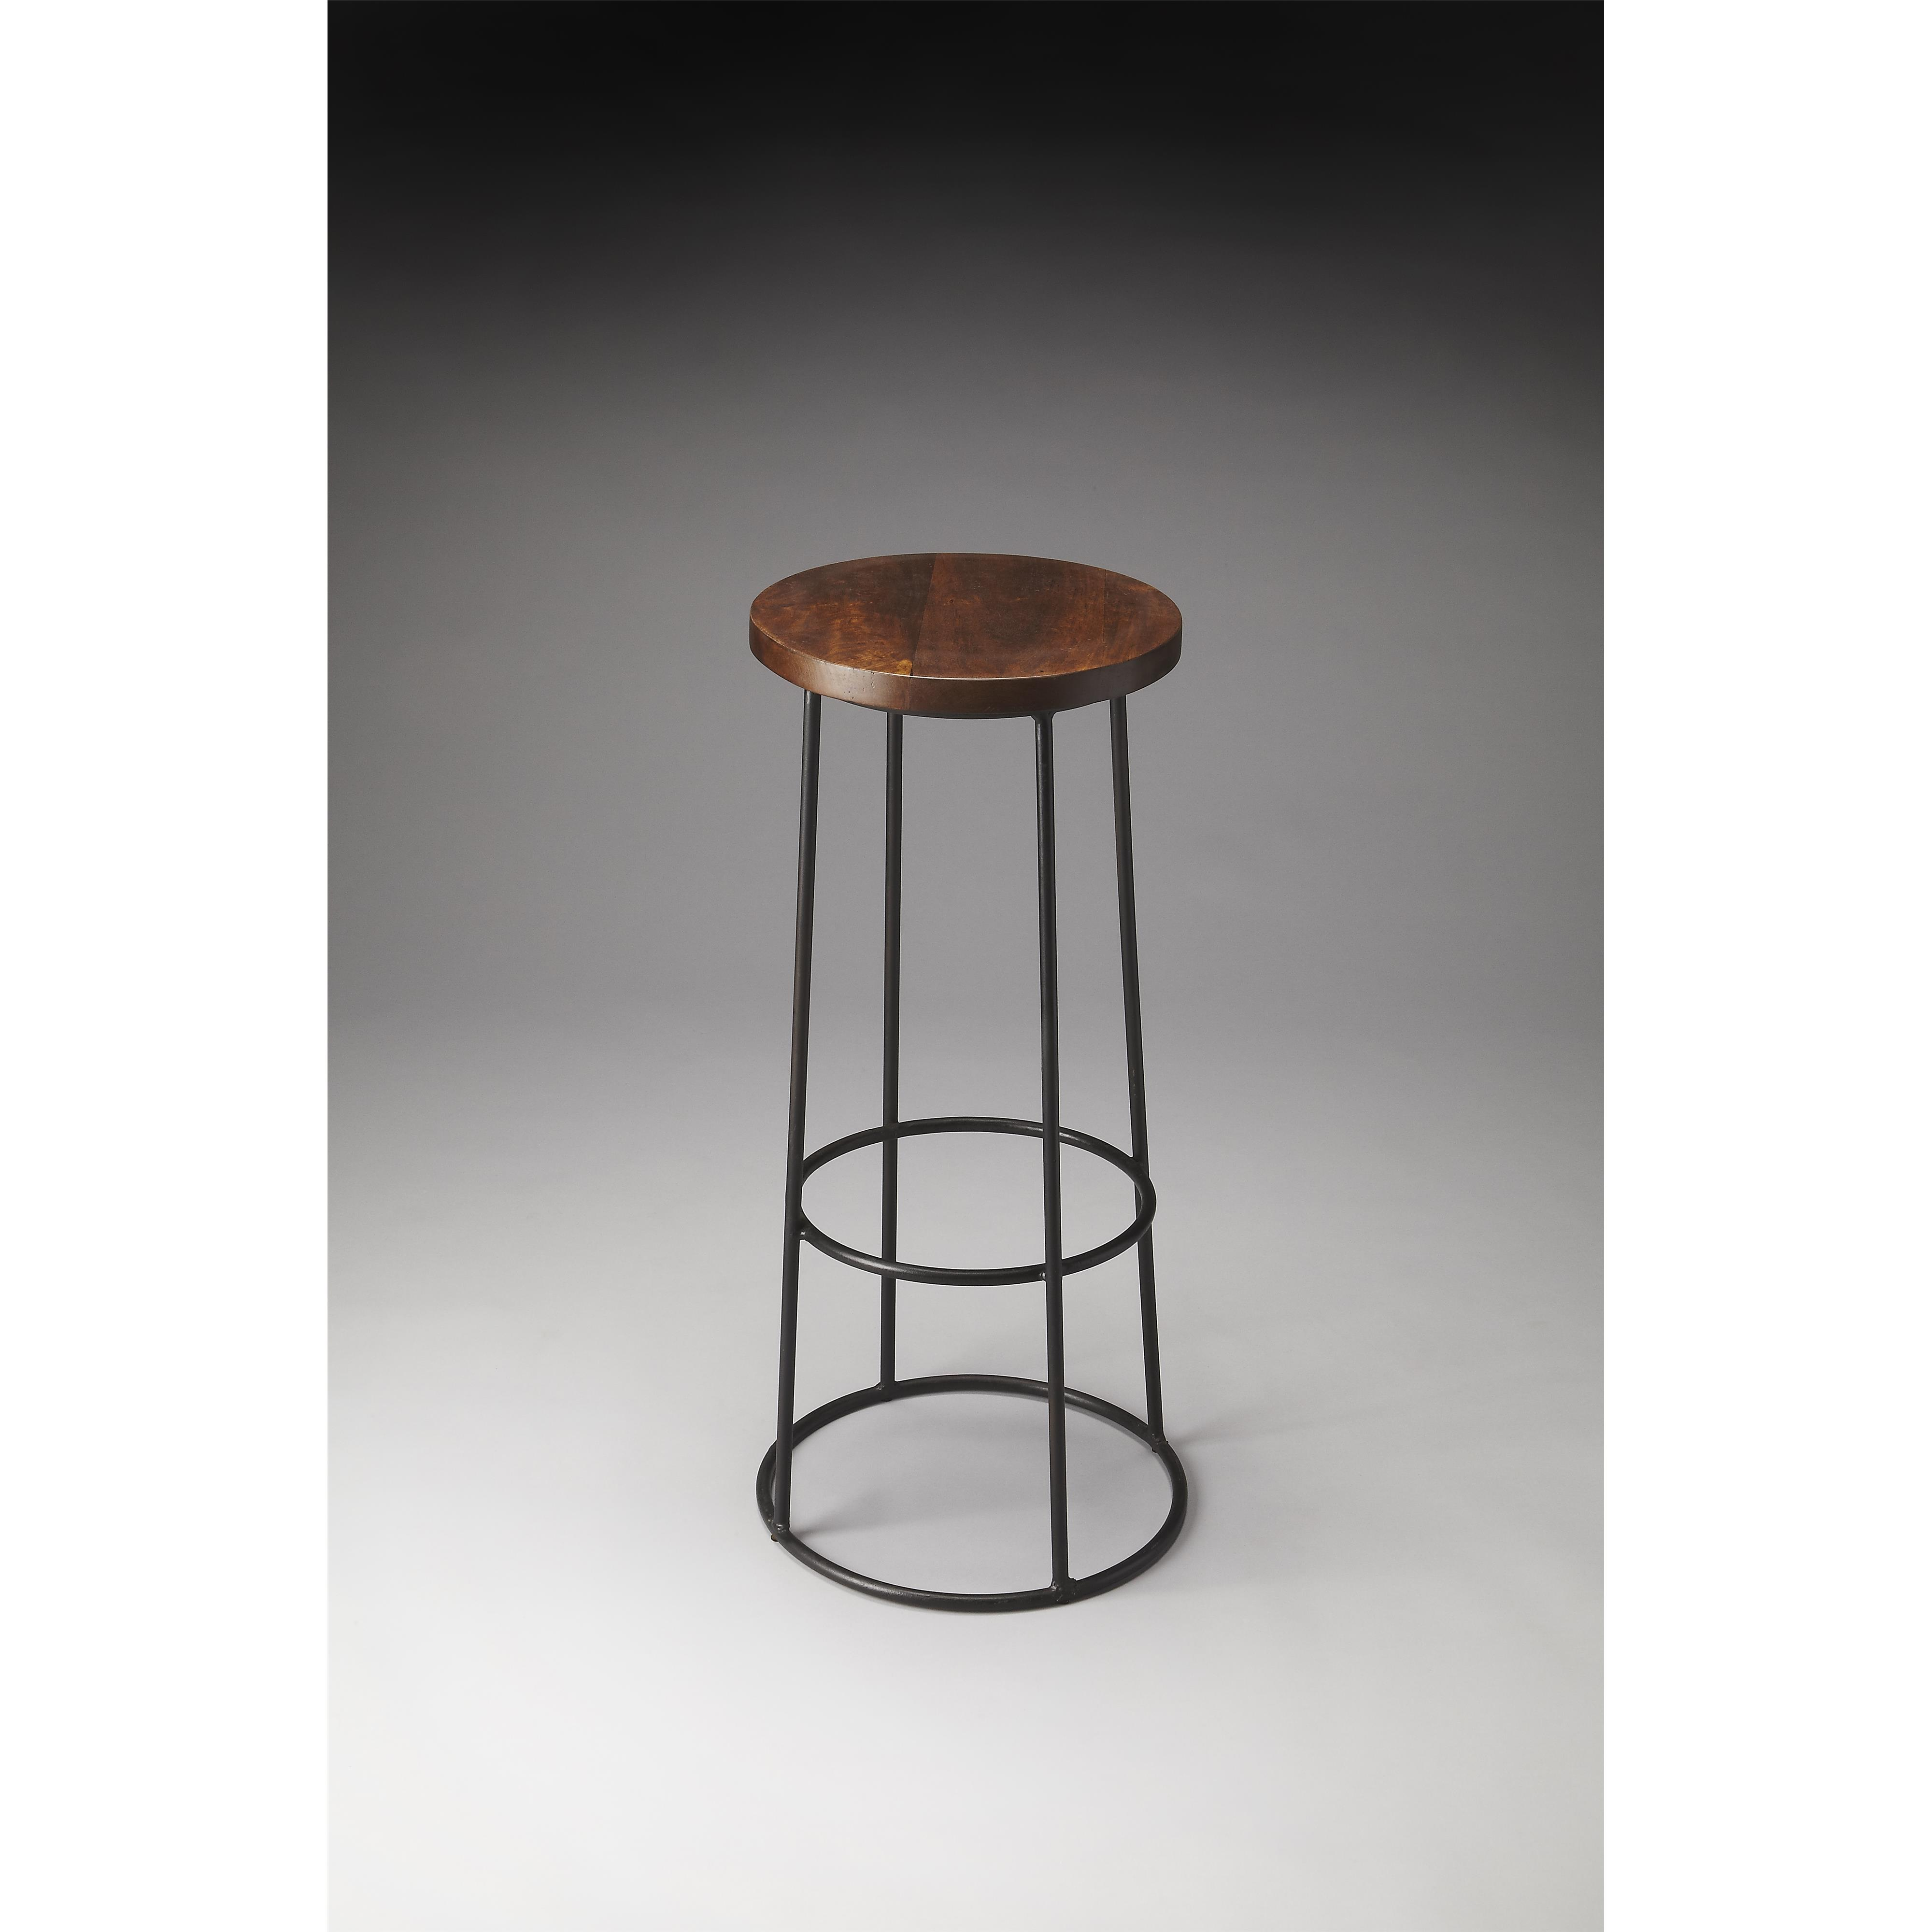 Butler Specialty Company Industrial Chic Bar Stool - Item Number: 5092330